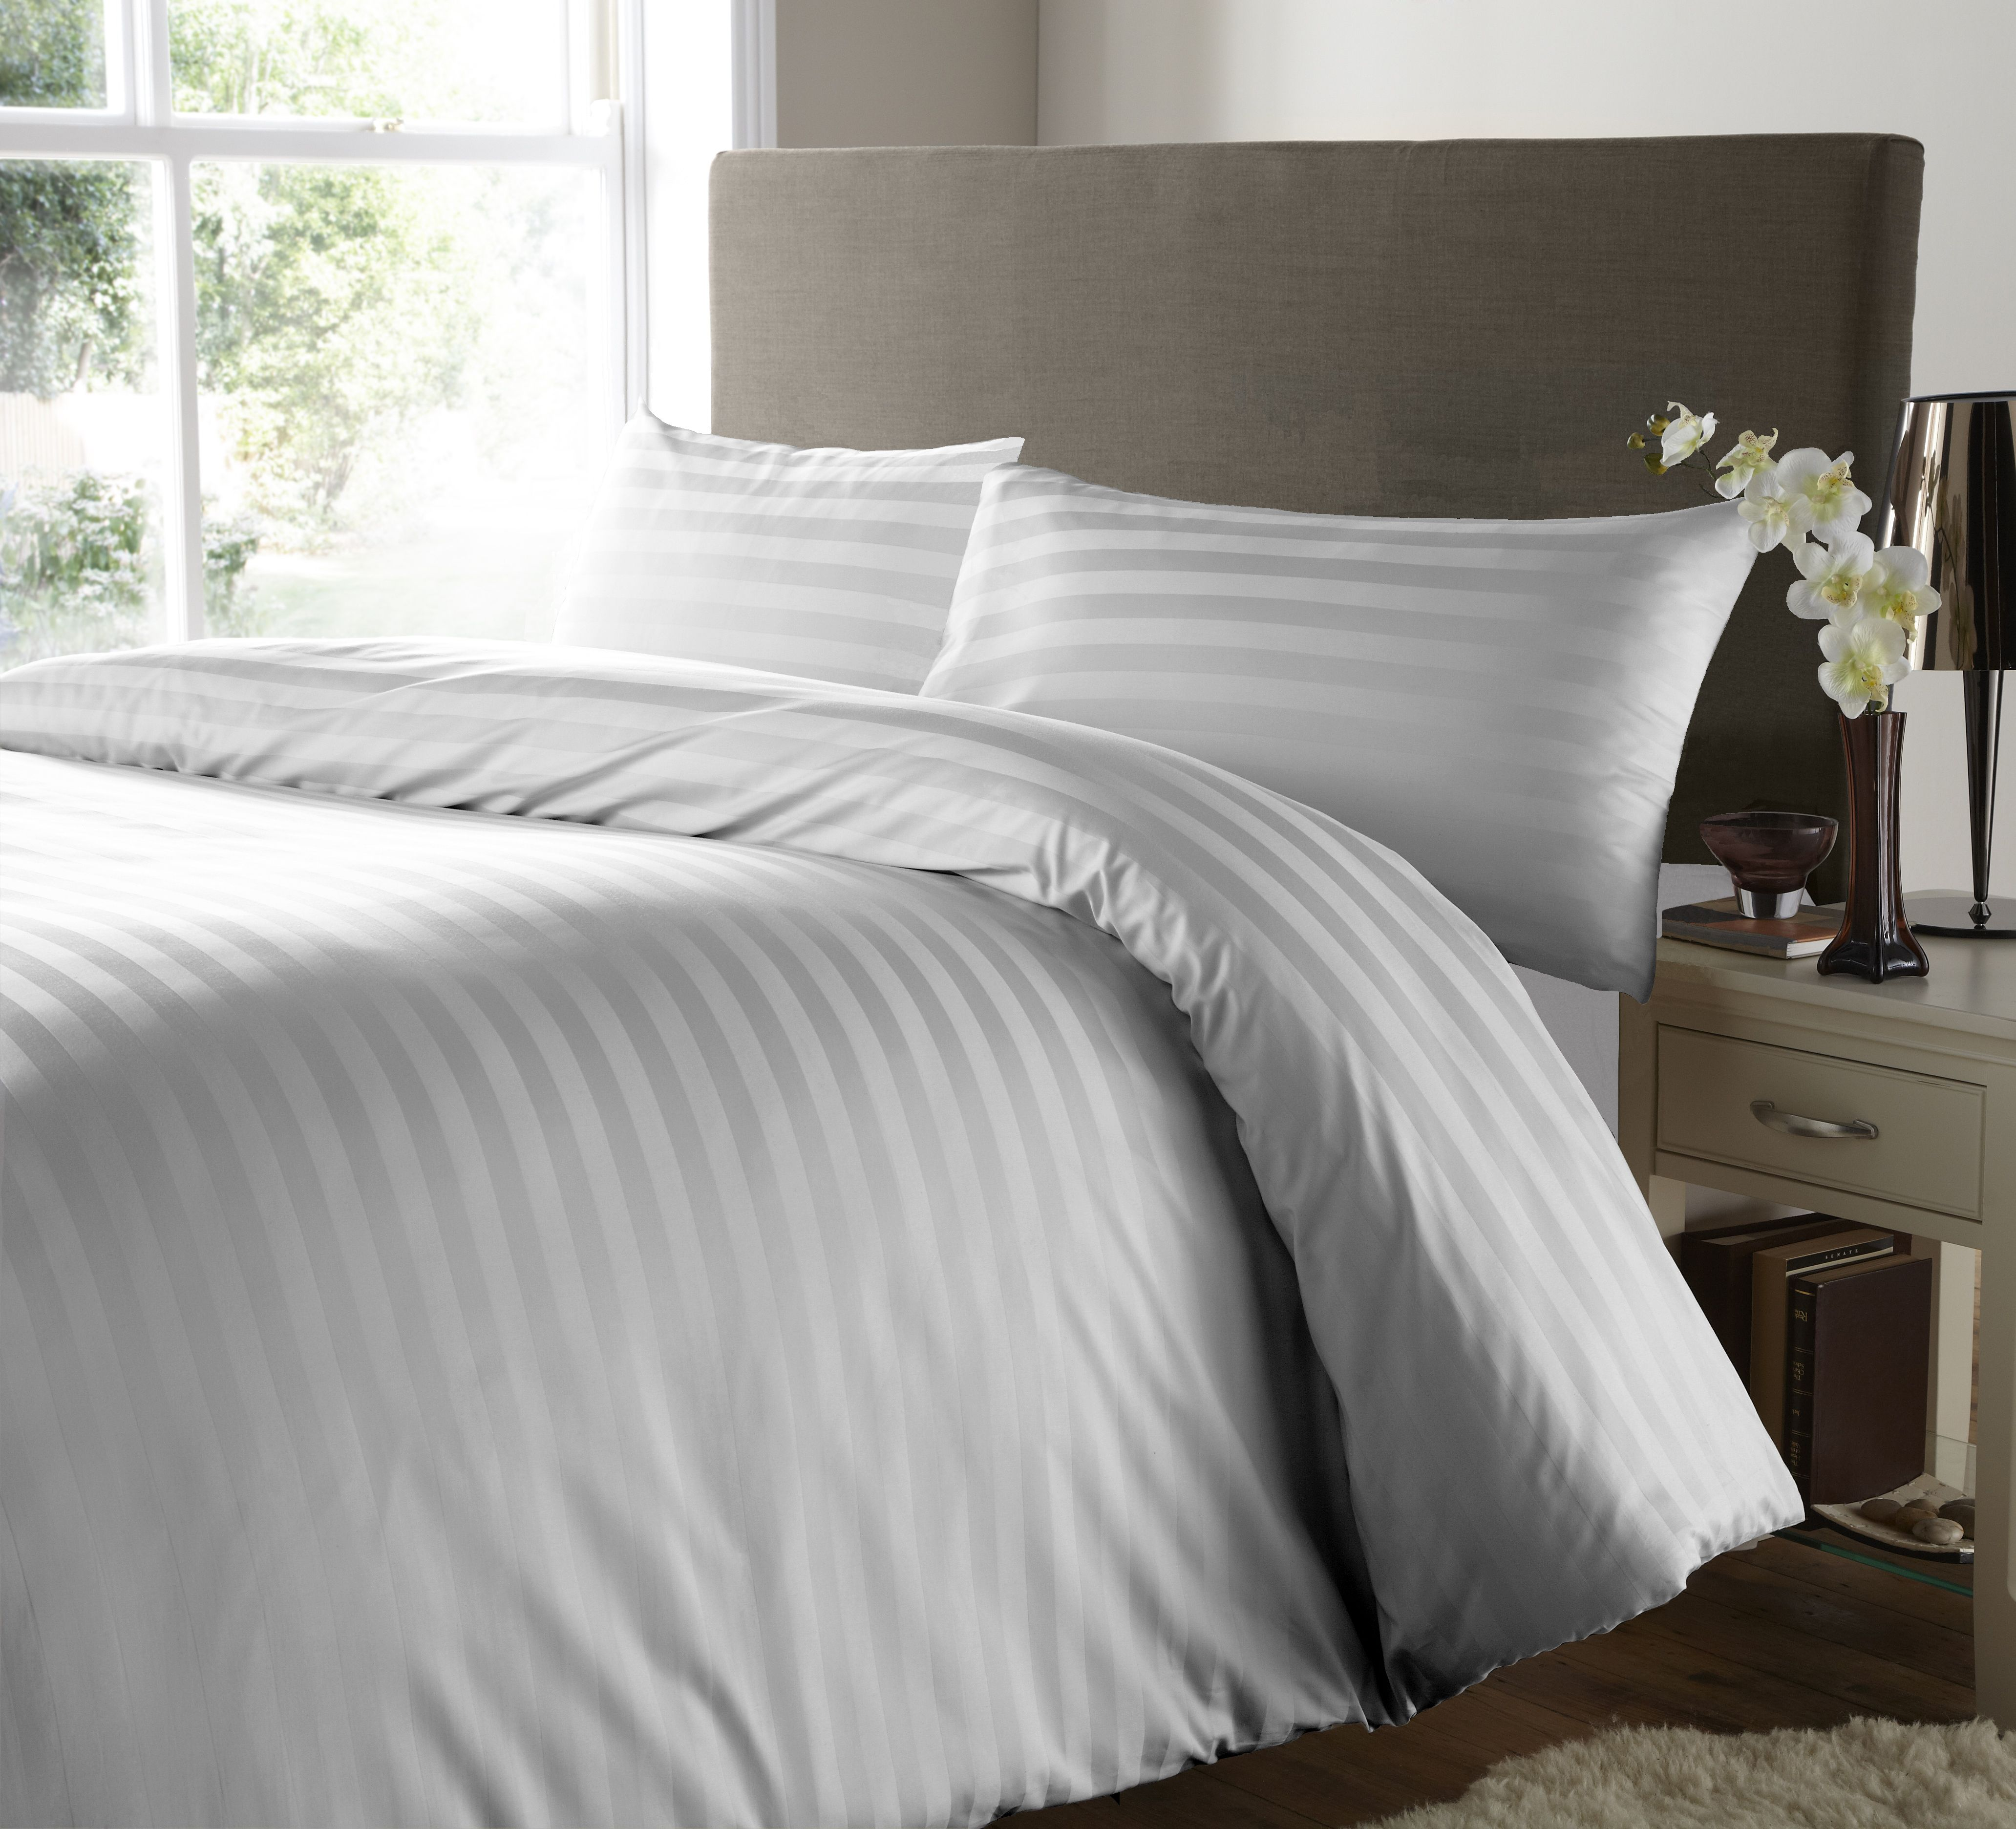 Hotel Quality 200 Thread Count Egyptian Cotton, Satin